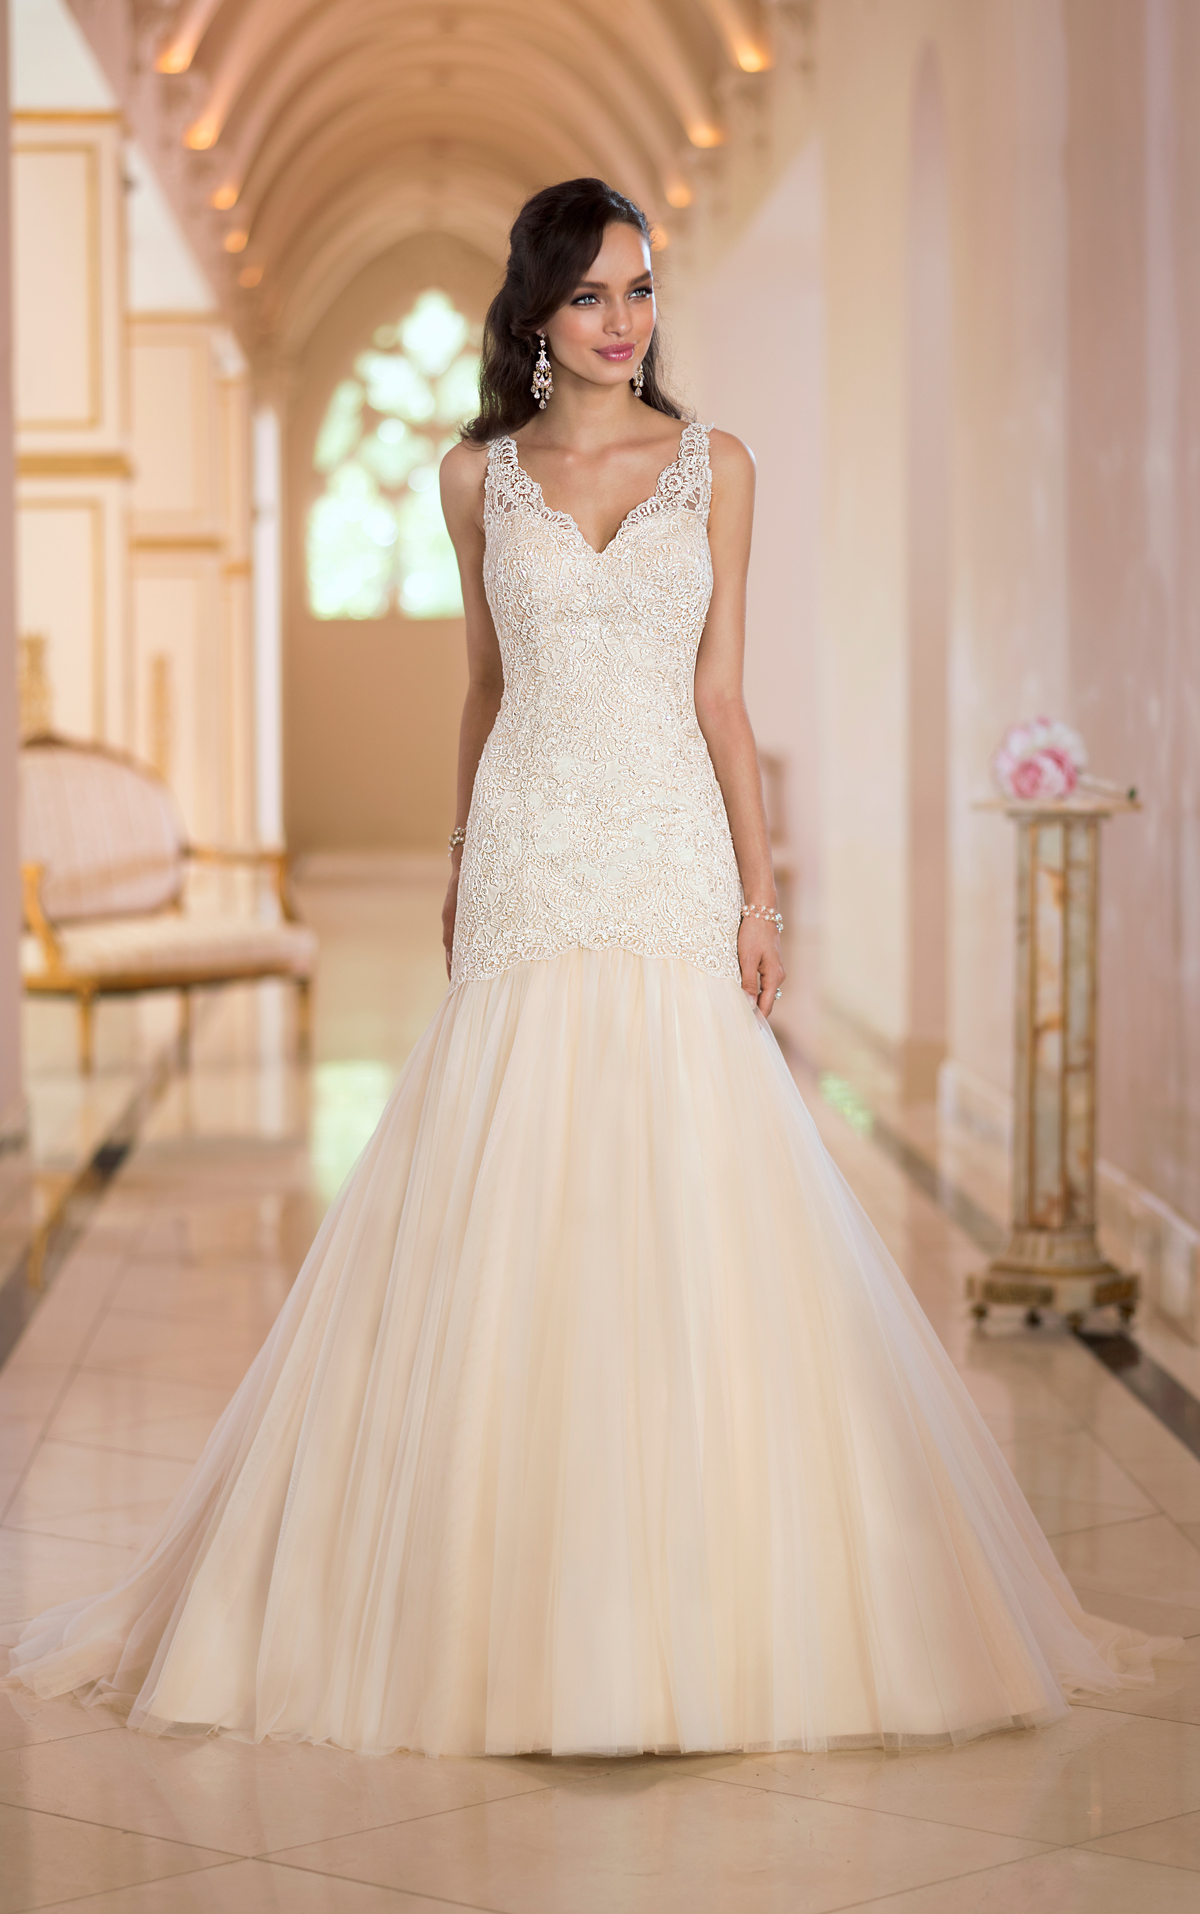 stella-york-wedding-dresses-2014-18-01152014